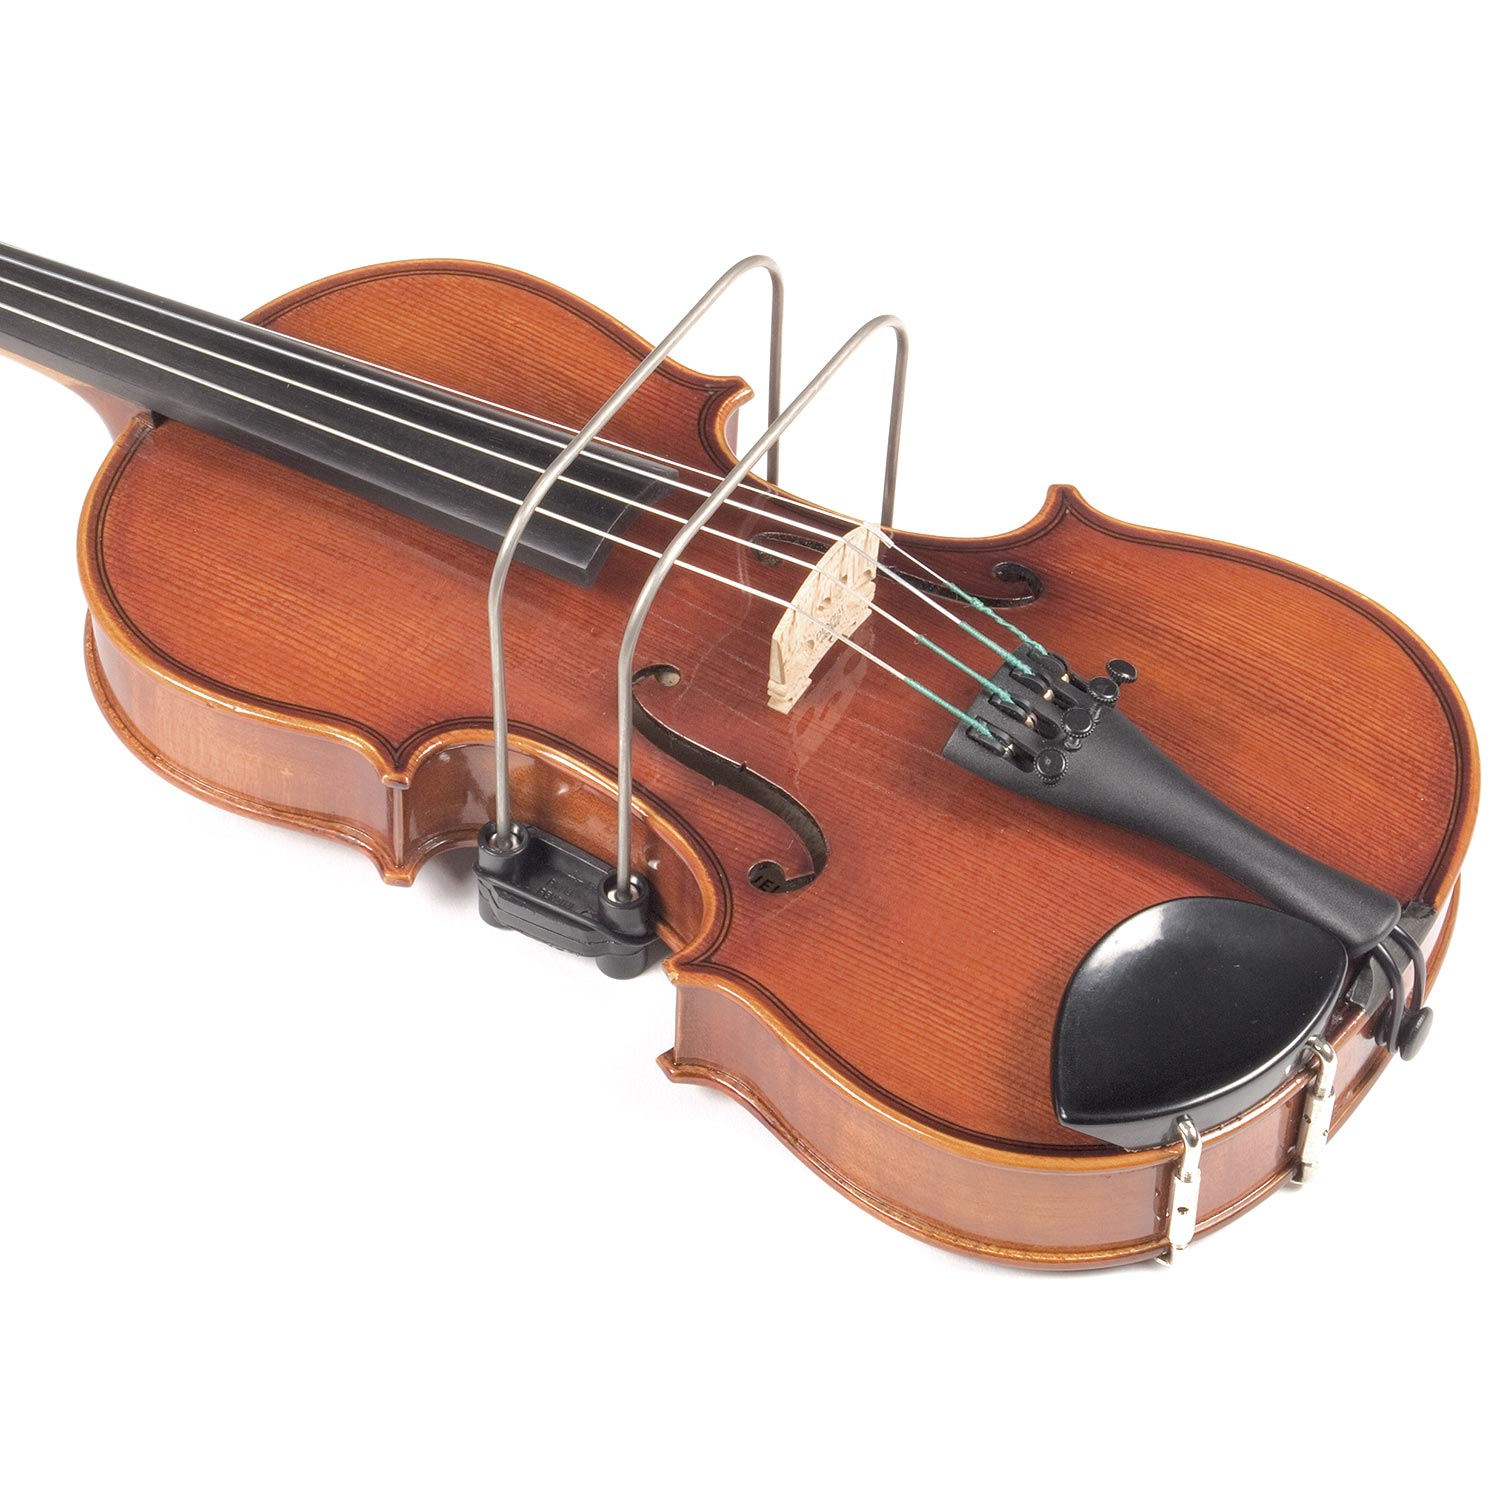 Bow-Right, for 1/8 - 1/16 violin